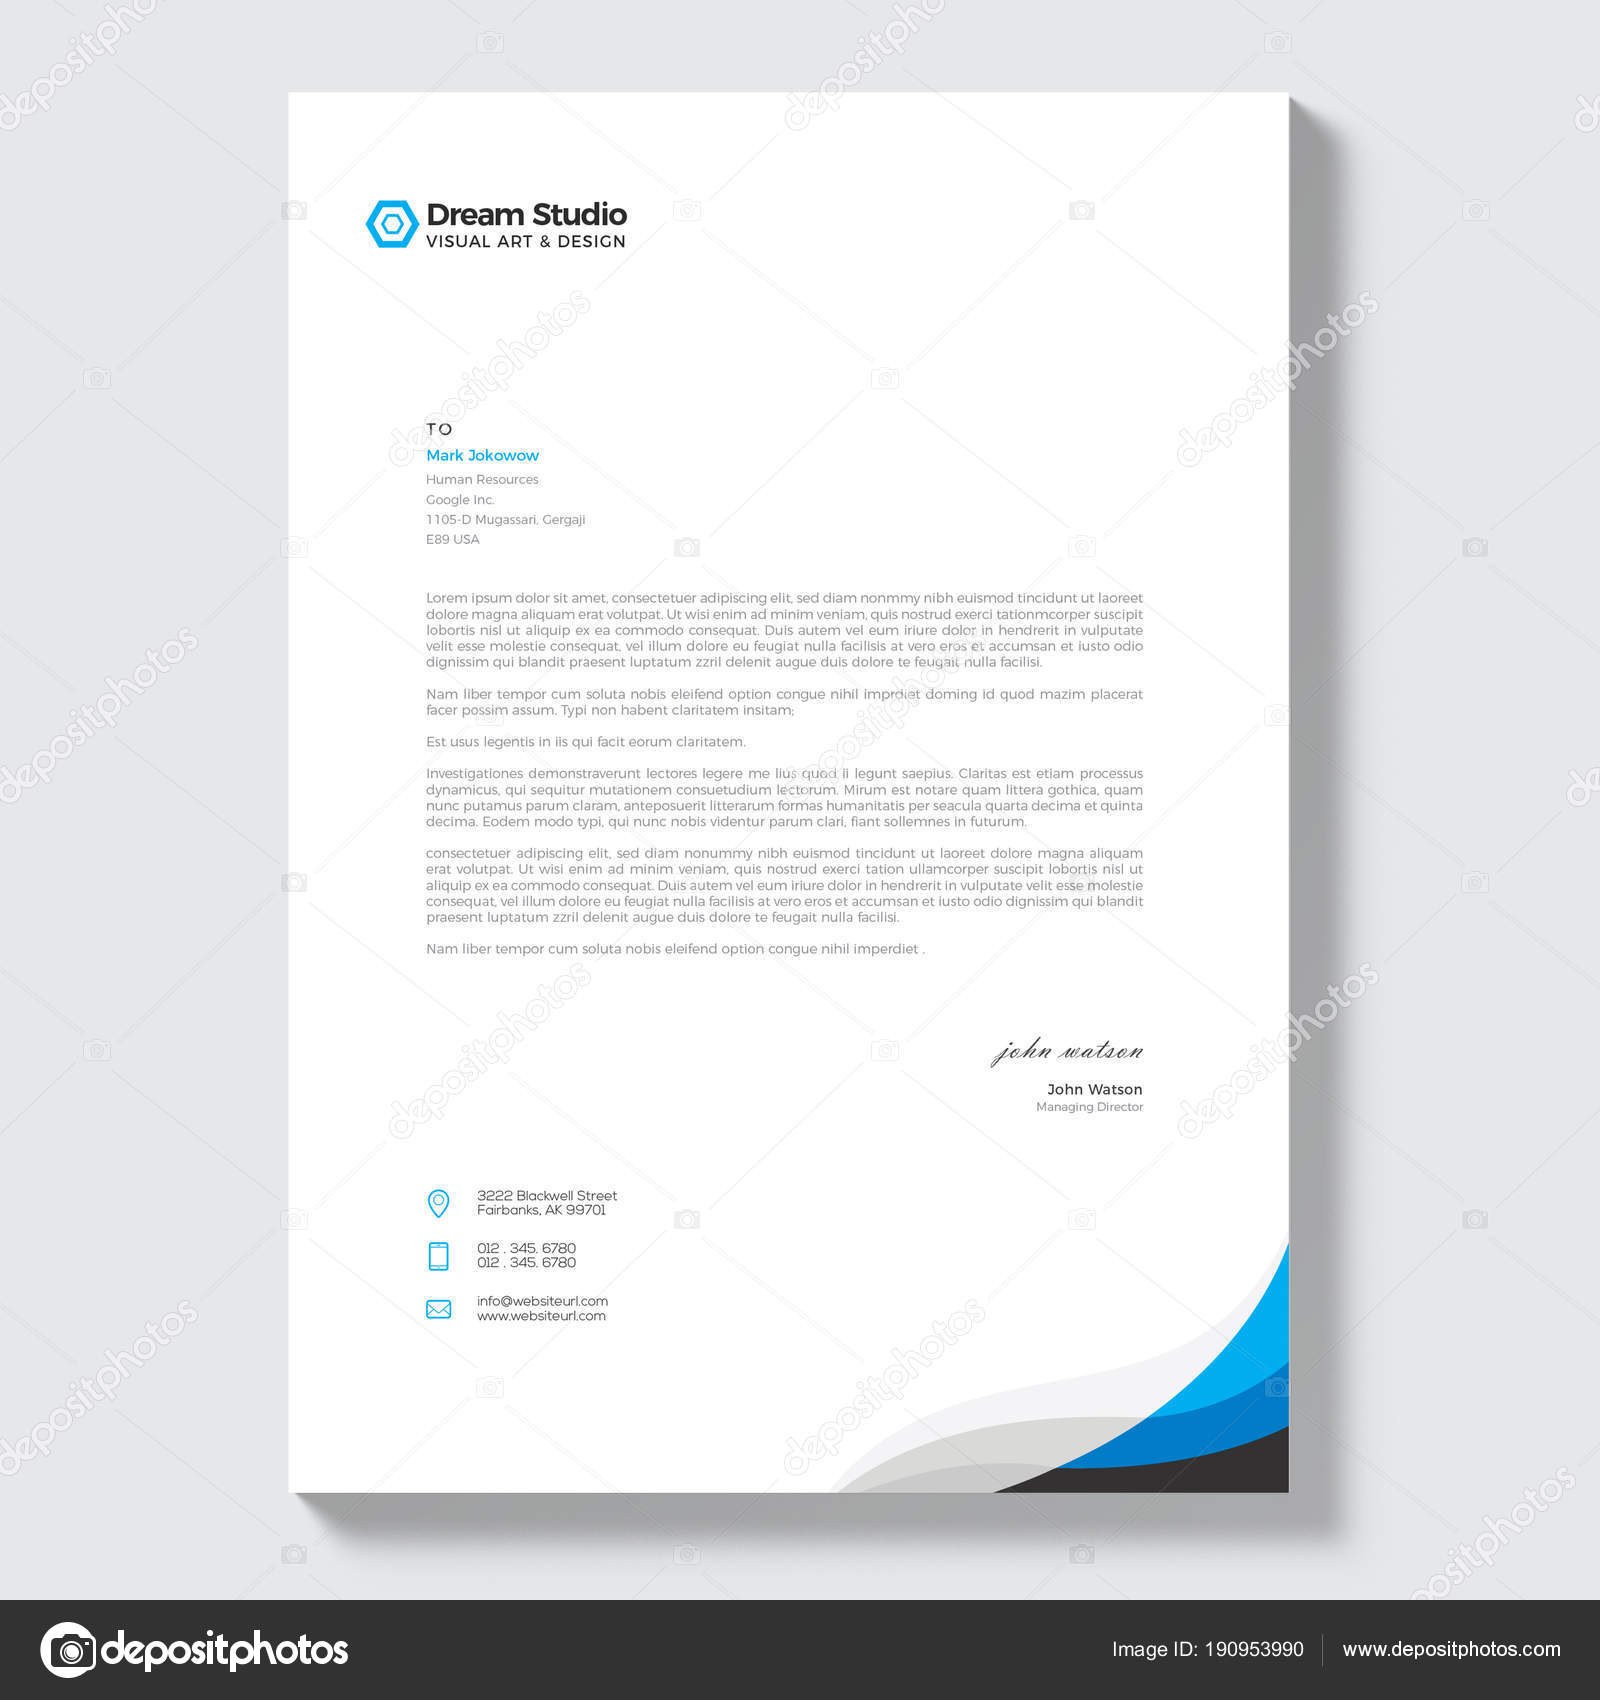 Modern company letterhead template stock vector dreamstudio eg modern company letterhead template stock vector thecheapjerseys Choice Image